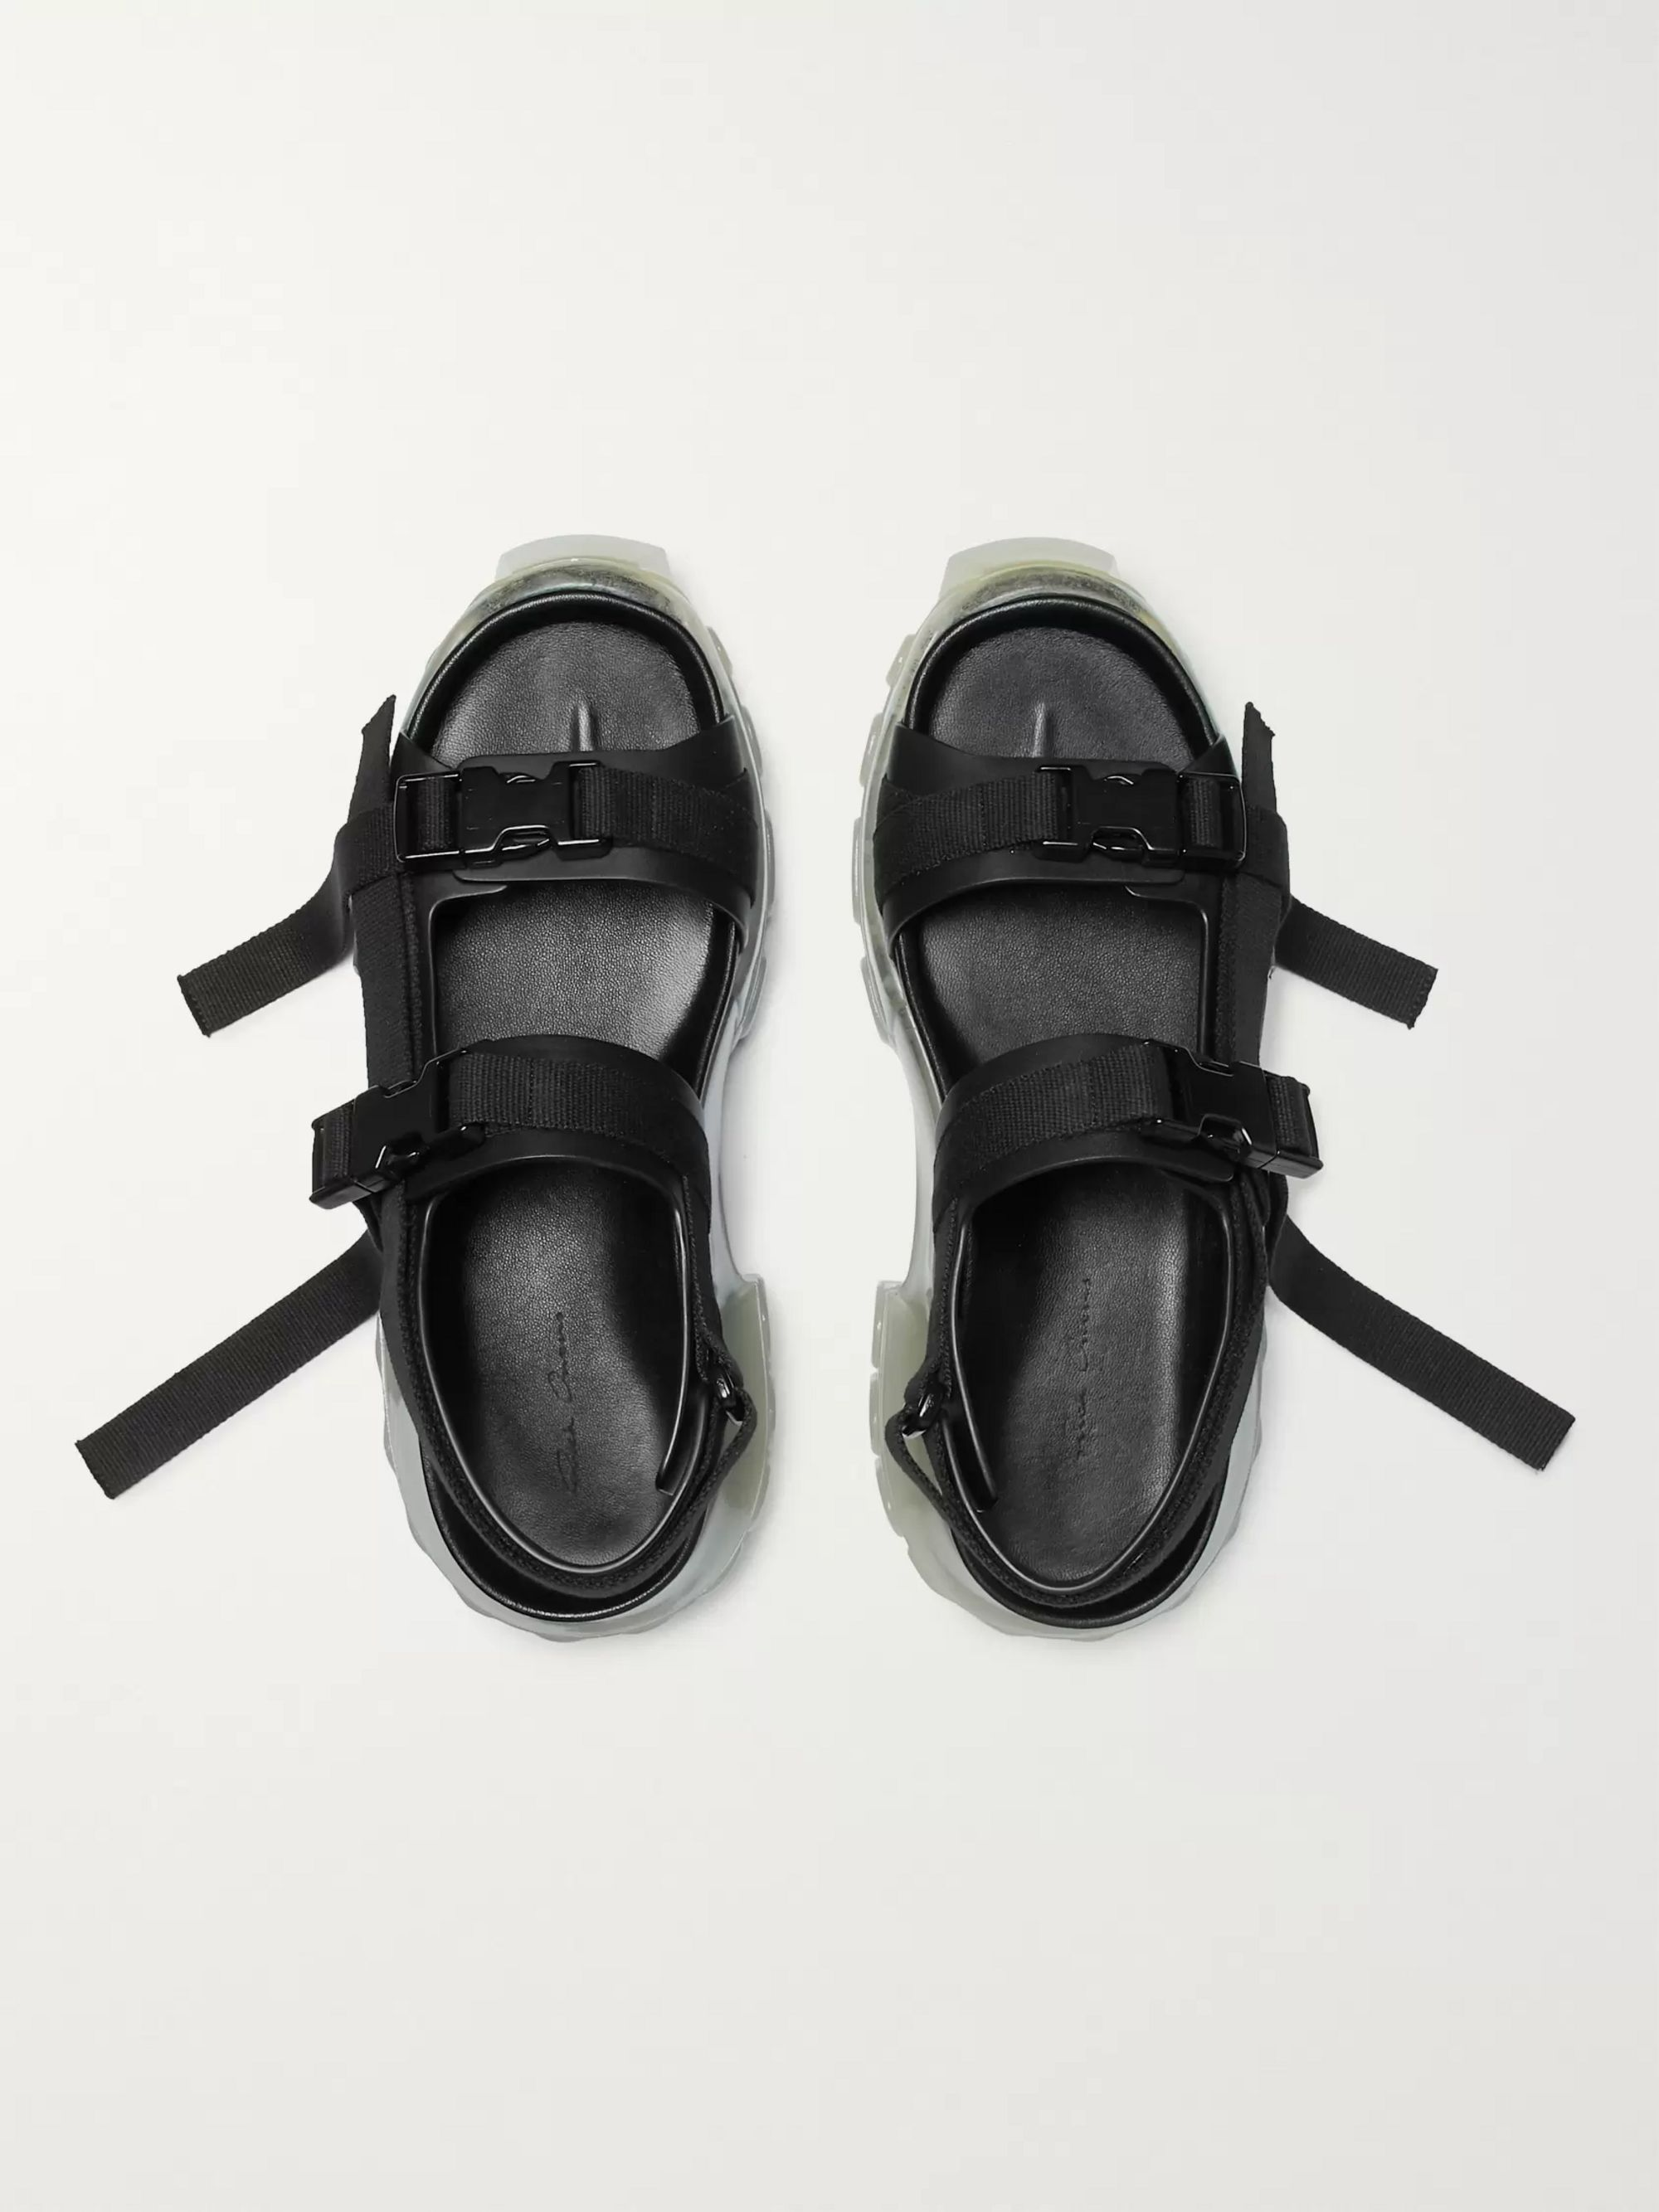 Tractor Webbing Trimmed Leather Sandals